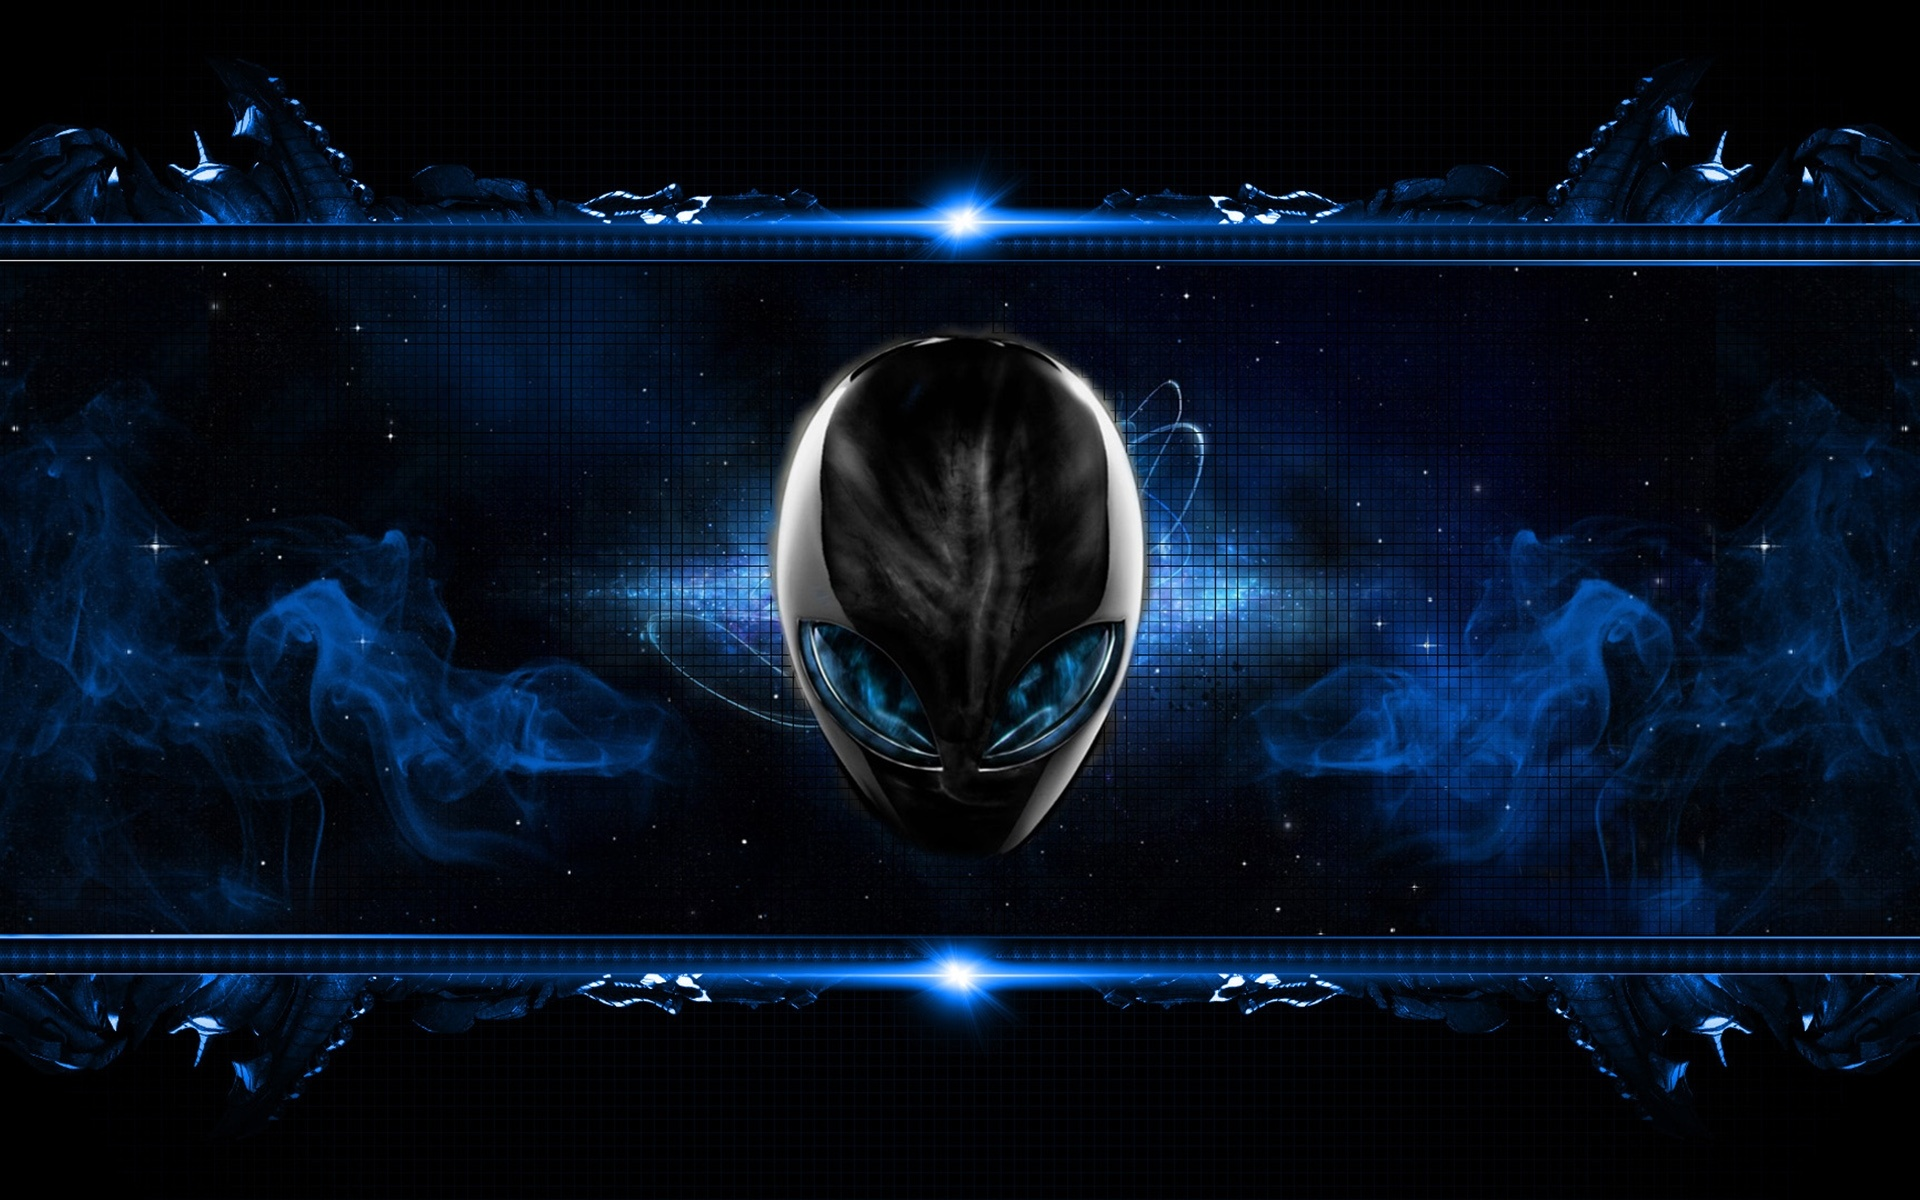 Alienware Computer Wallpapers Desktop Backgrounds 1920x1200 ID 1920x1200